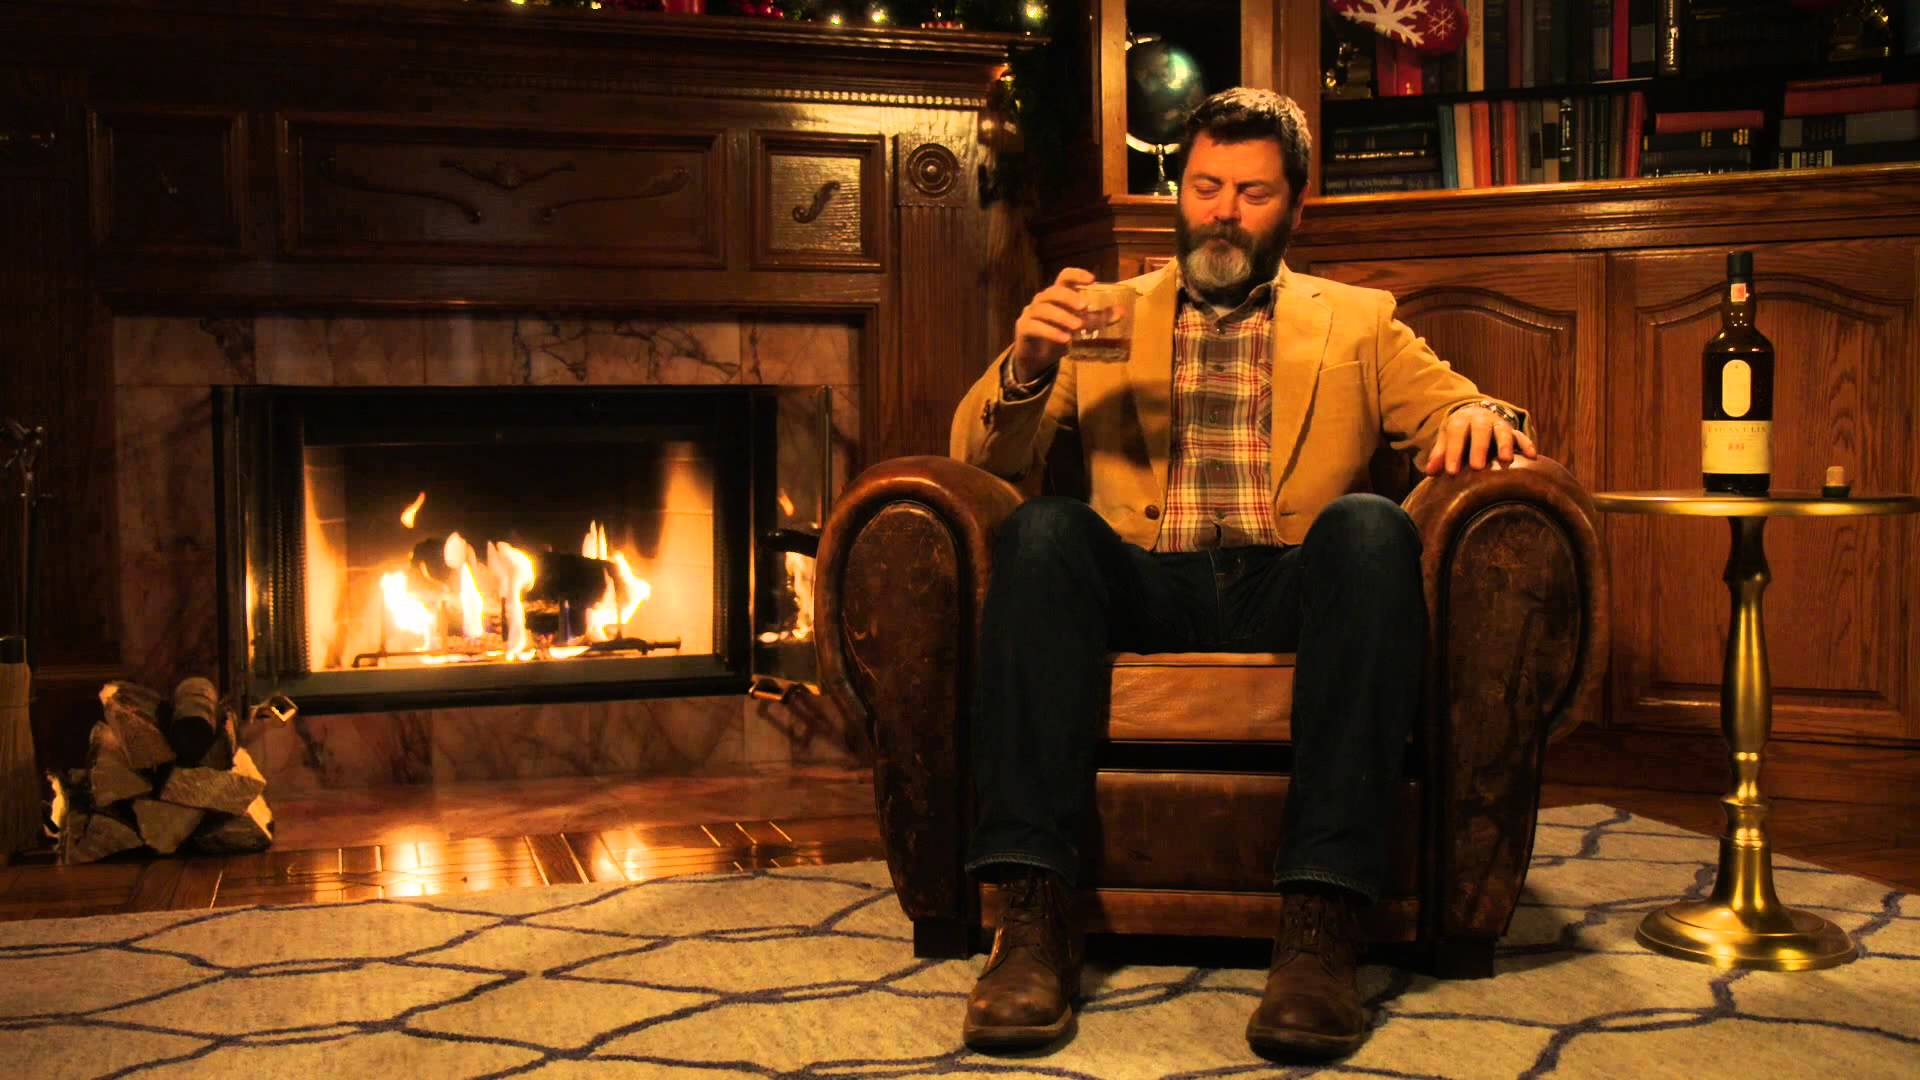 nick offerman silently drinks single malt scotch whisky in front